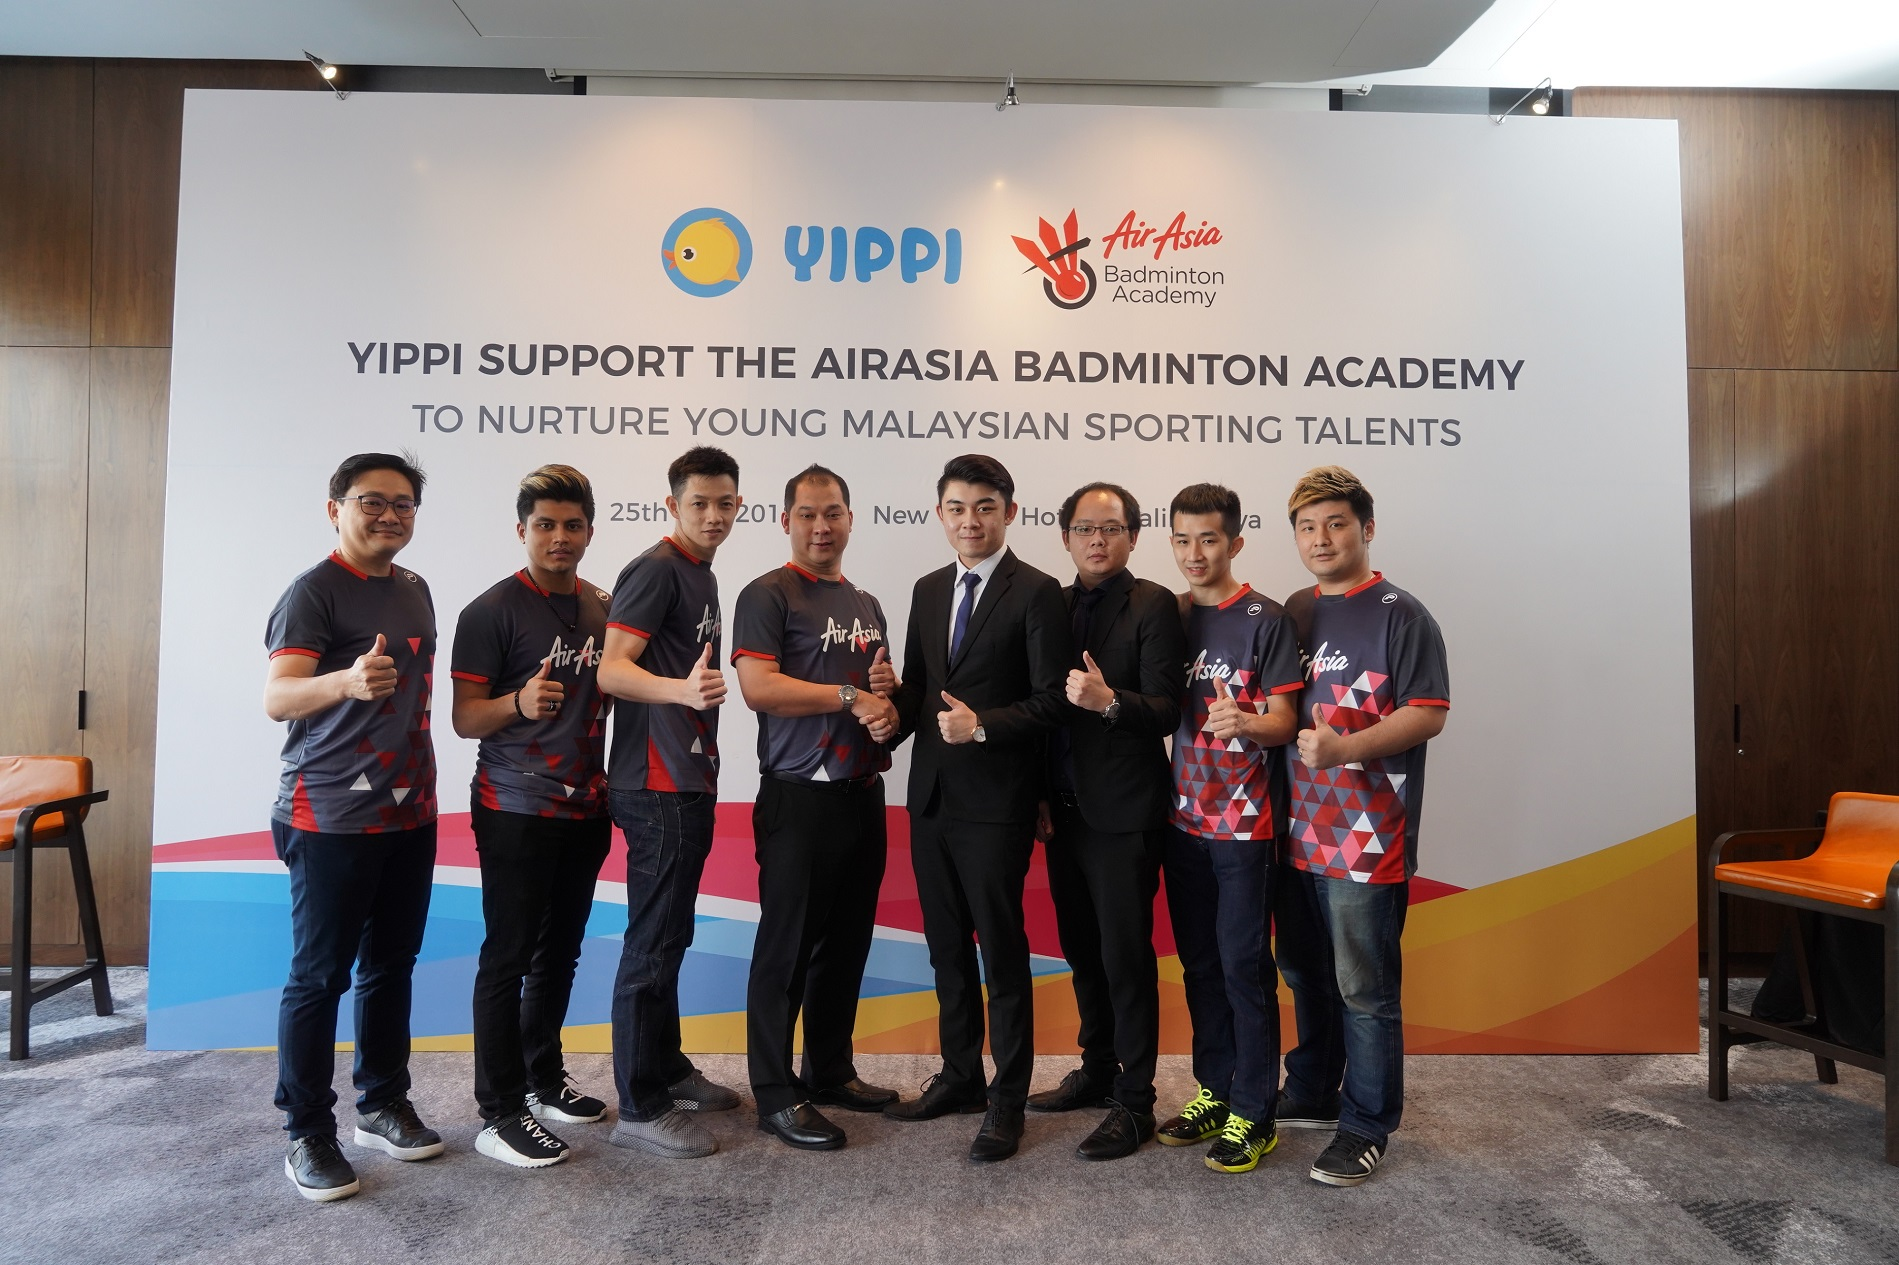 Image 4 – (Forth and fifth from left) Jason Lim, President of AirAsia Badminton Academy and Tan Fei, Business Development Manager of Toga Limited together with several of the national badminton players new 4